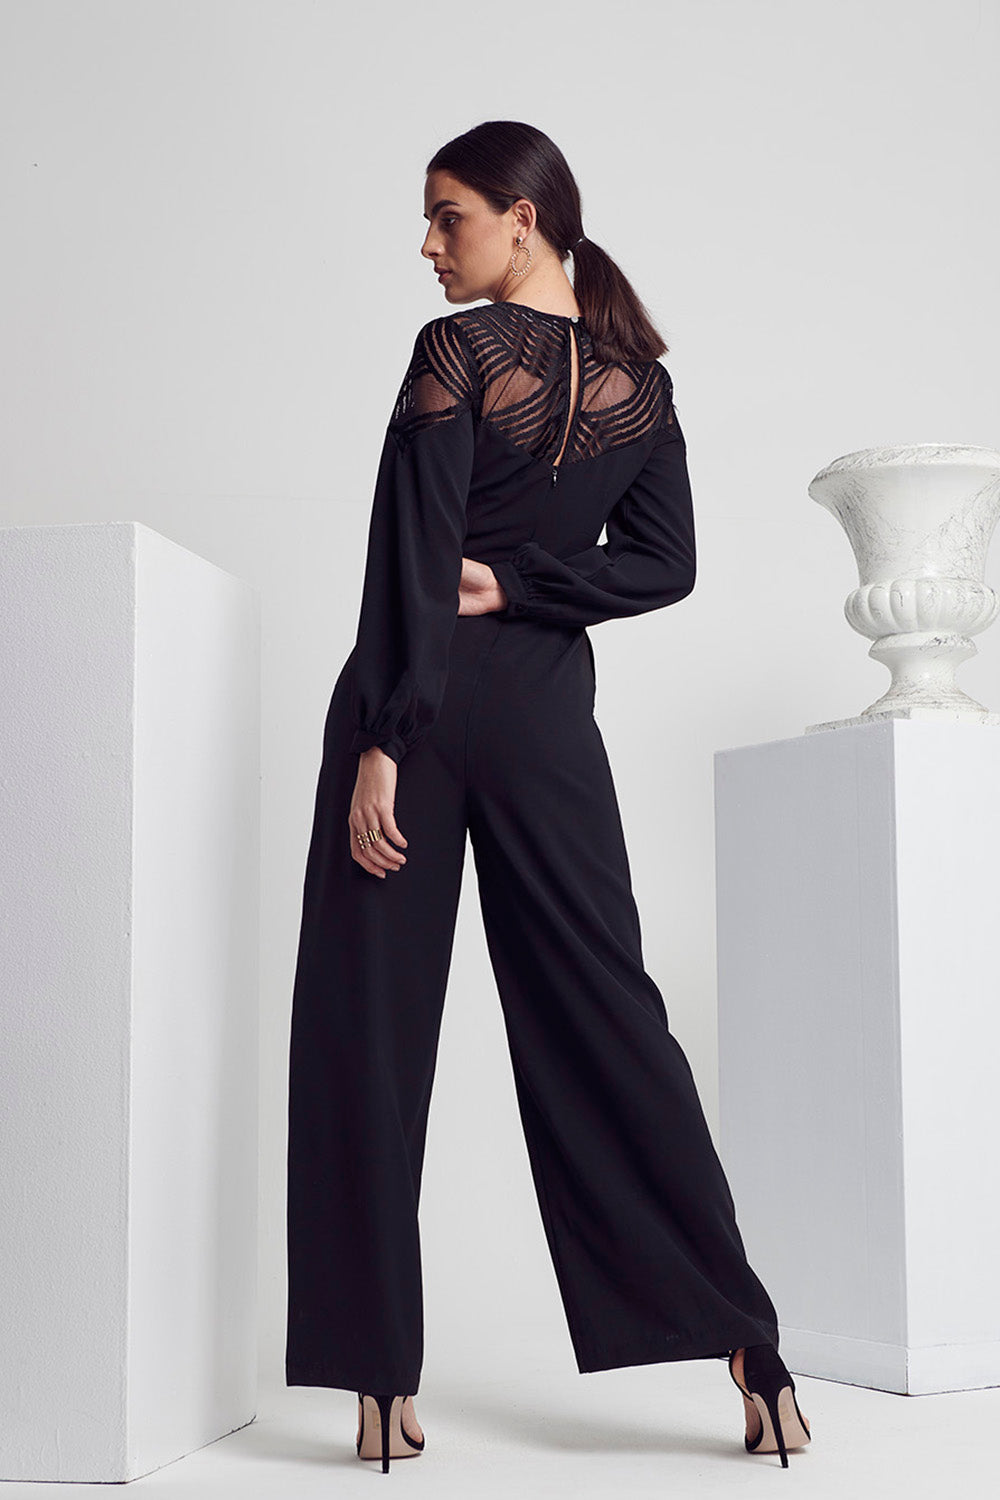 CALIBRE MIX JUMPSUIT